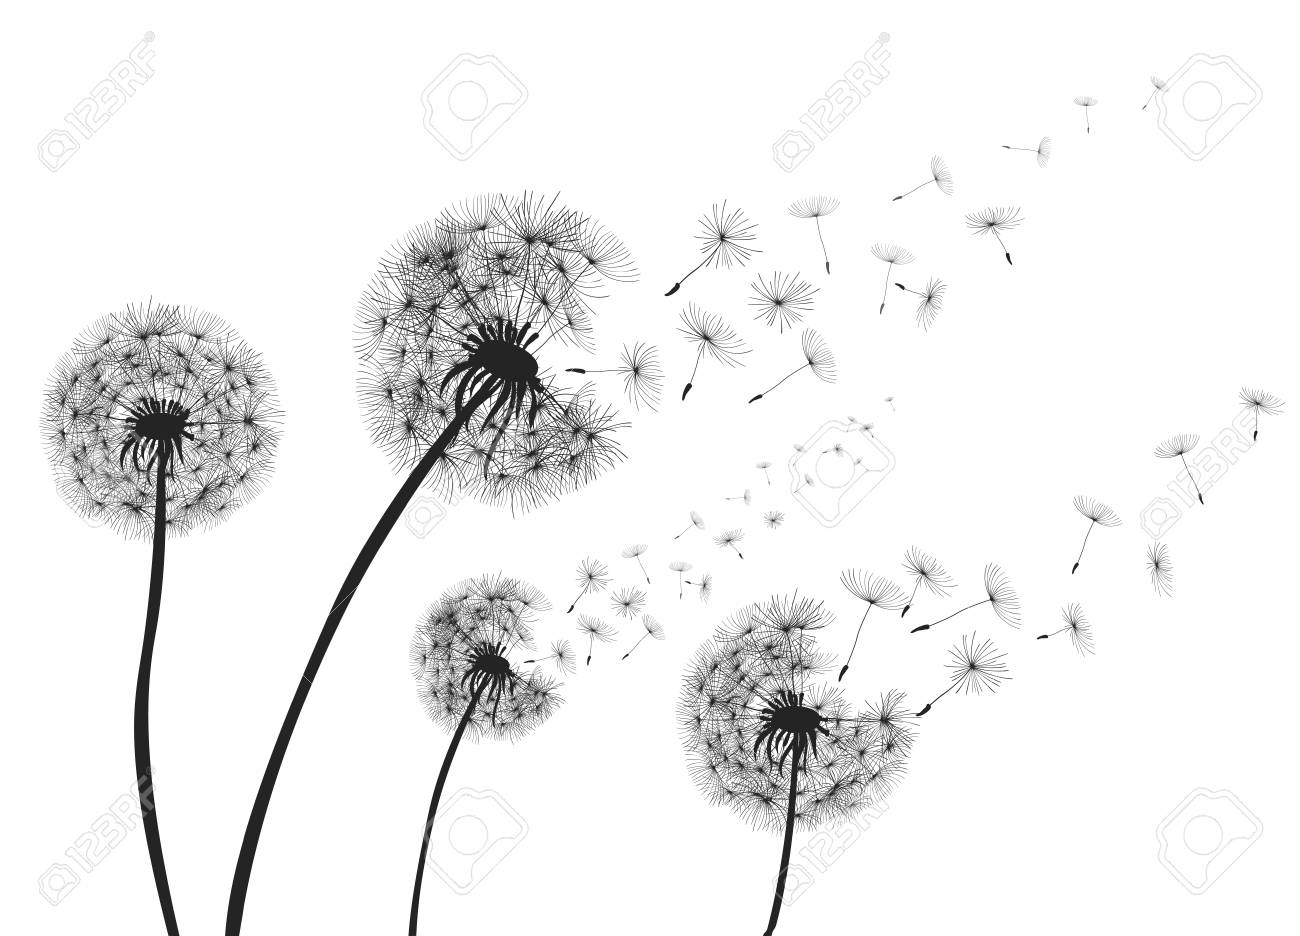 Abstract dandelions with flying seeds. - 99467257